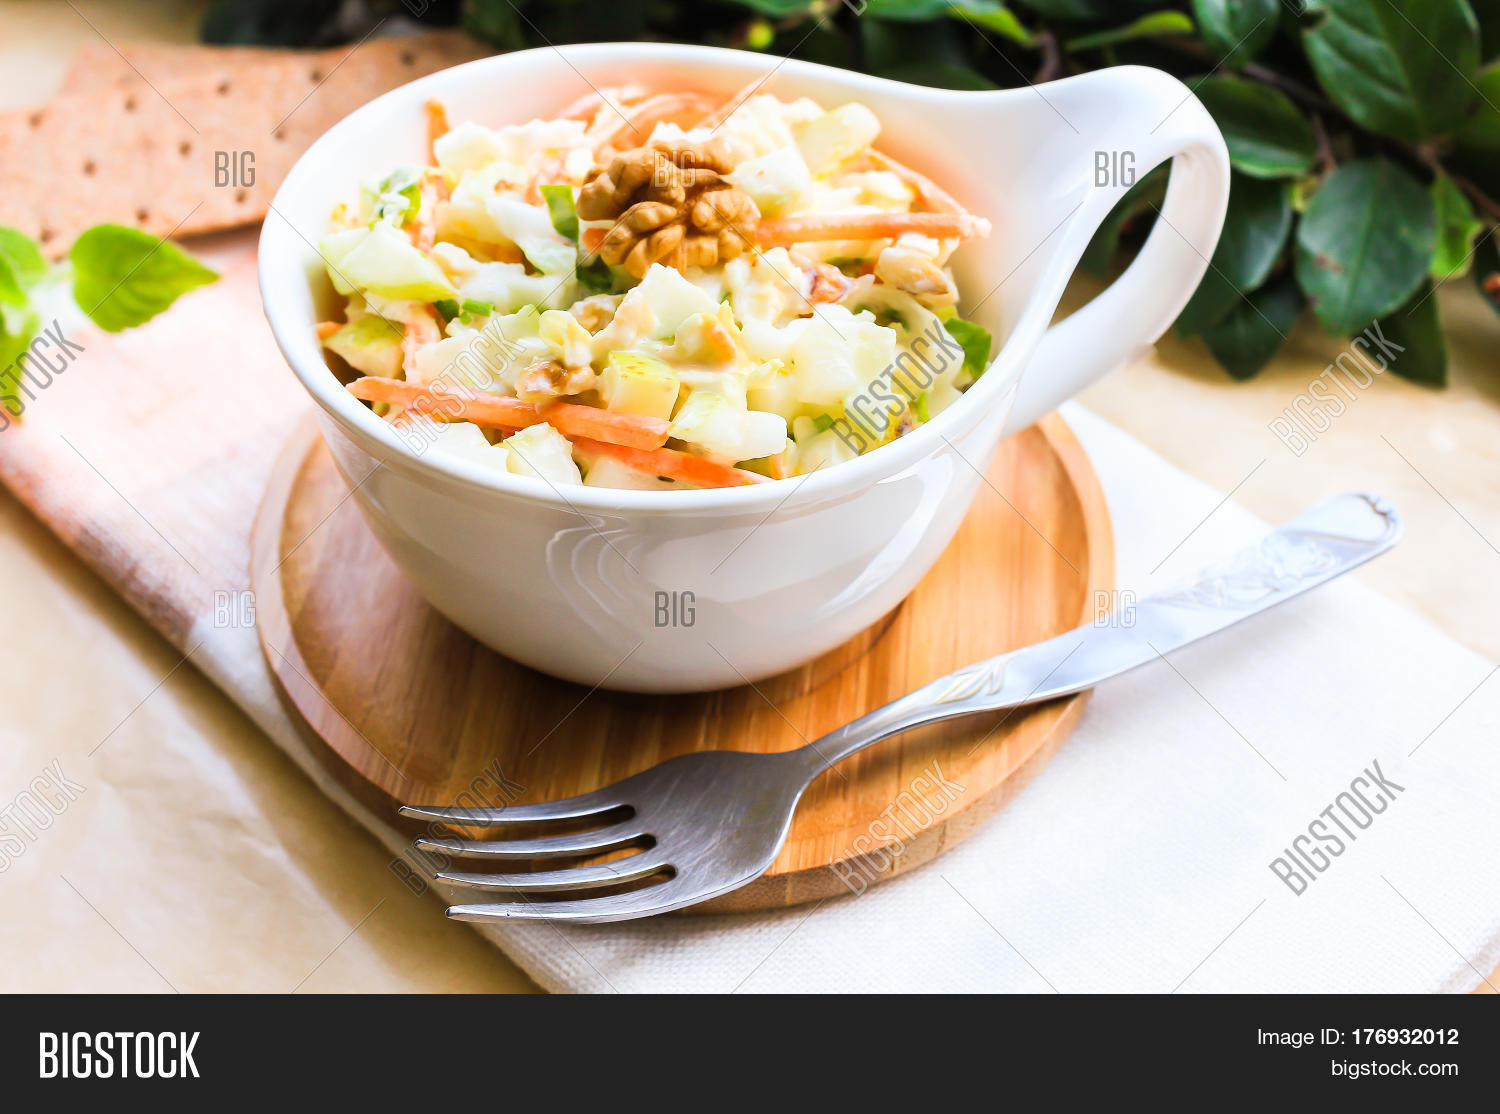 Fresh coleslaw salad with white cabbage, carrot, apples ...